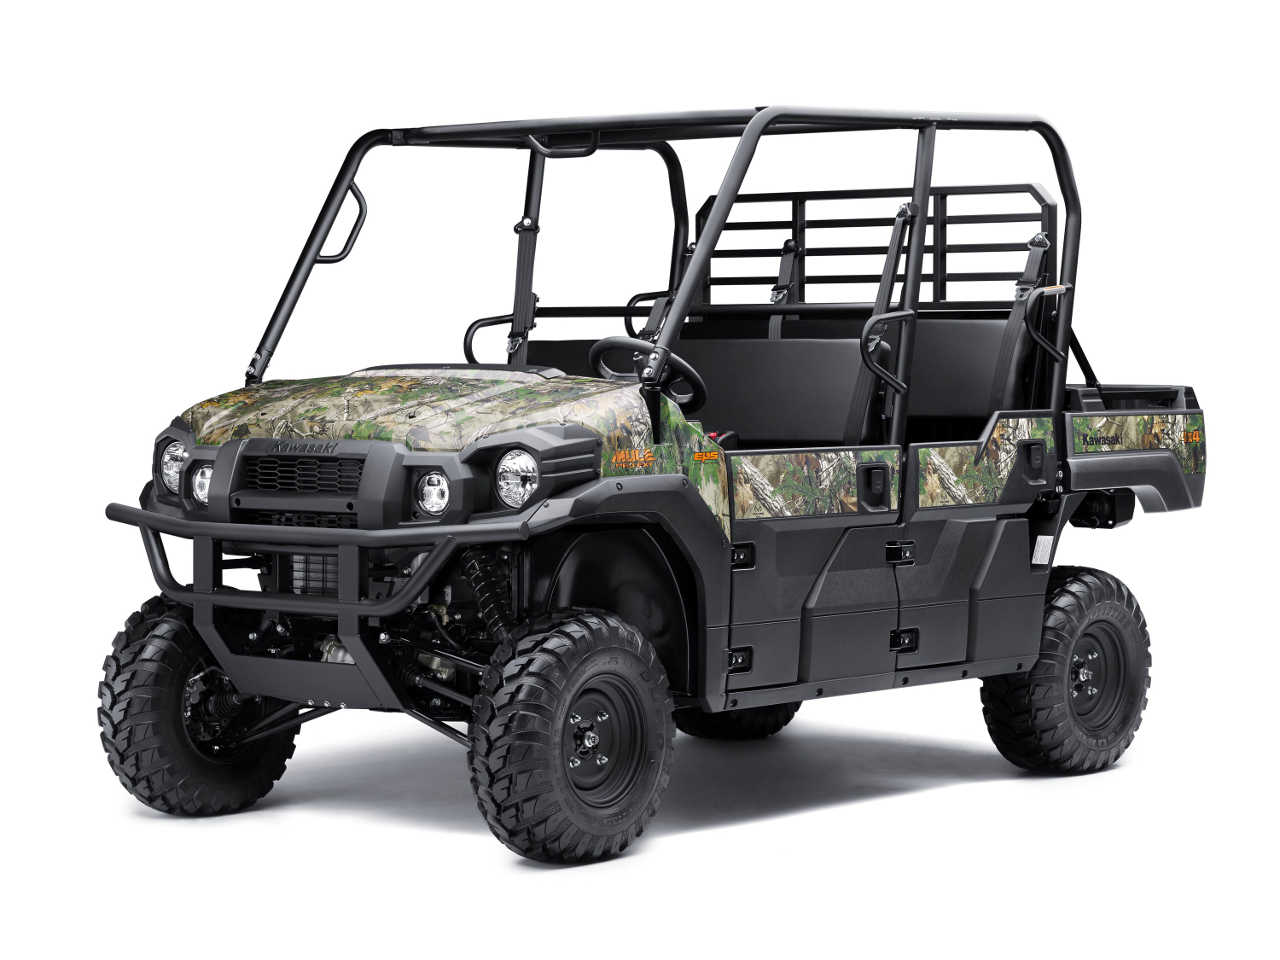 Kawasaki Mule Weight